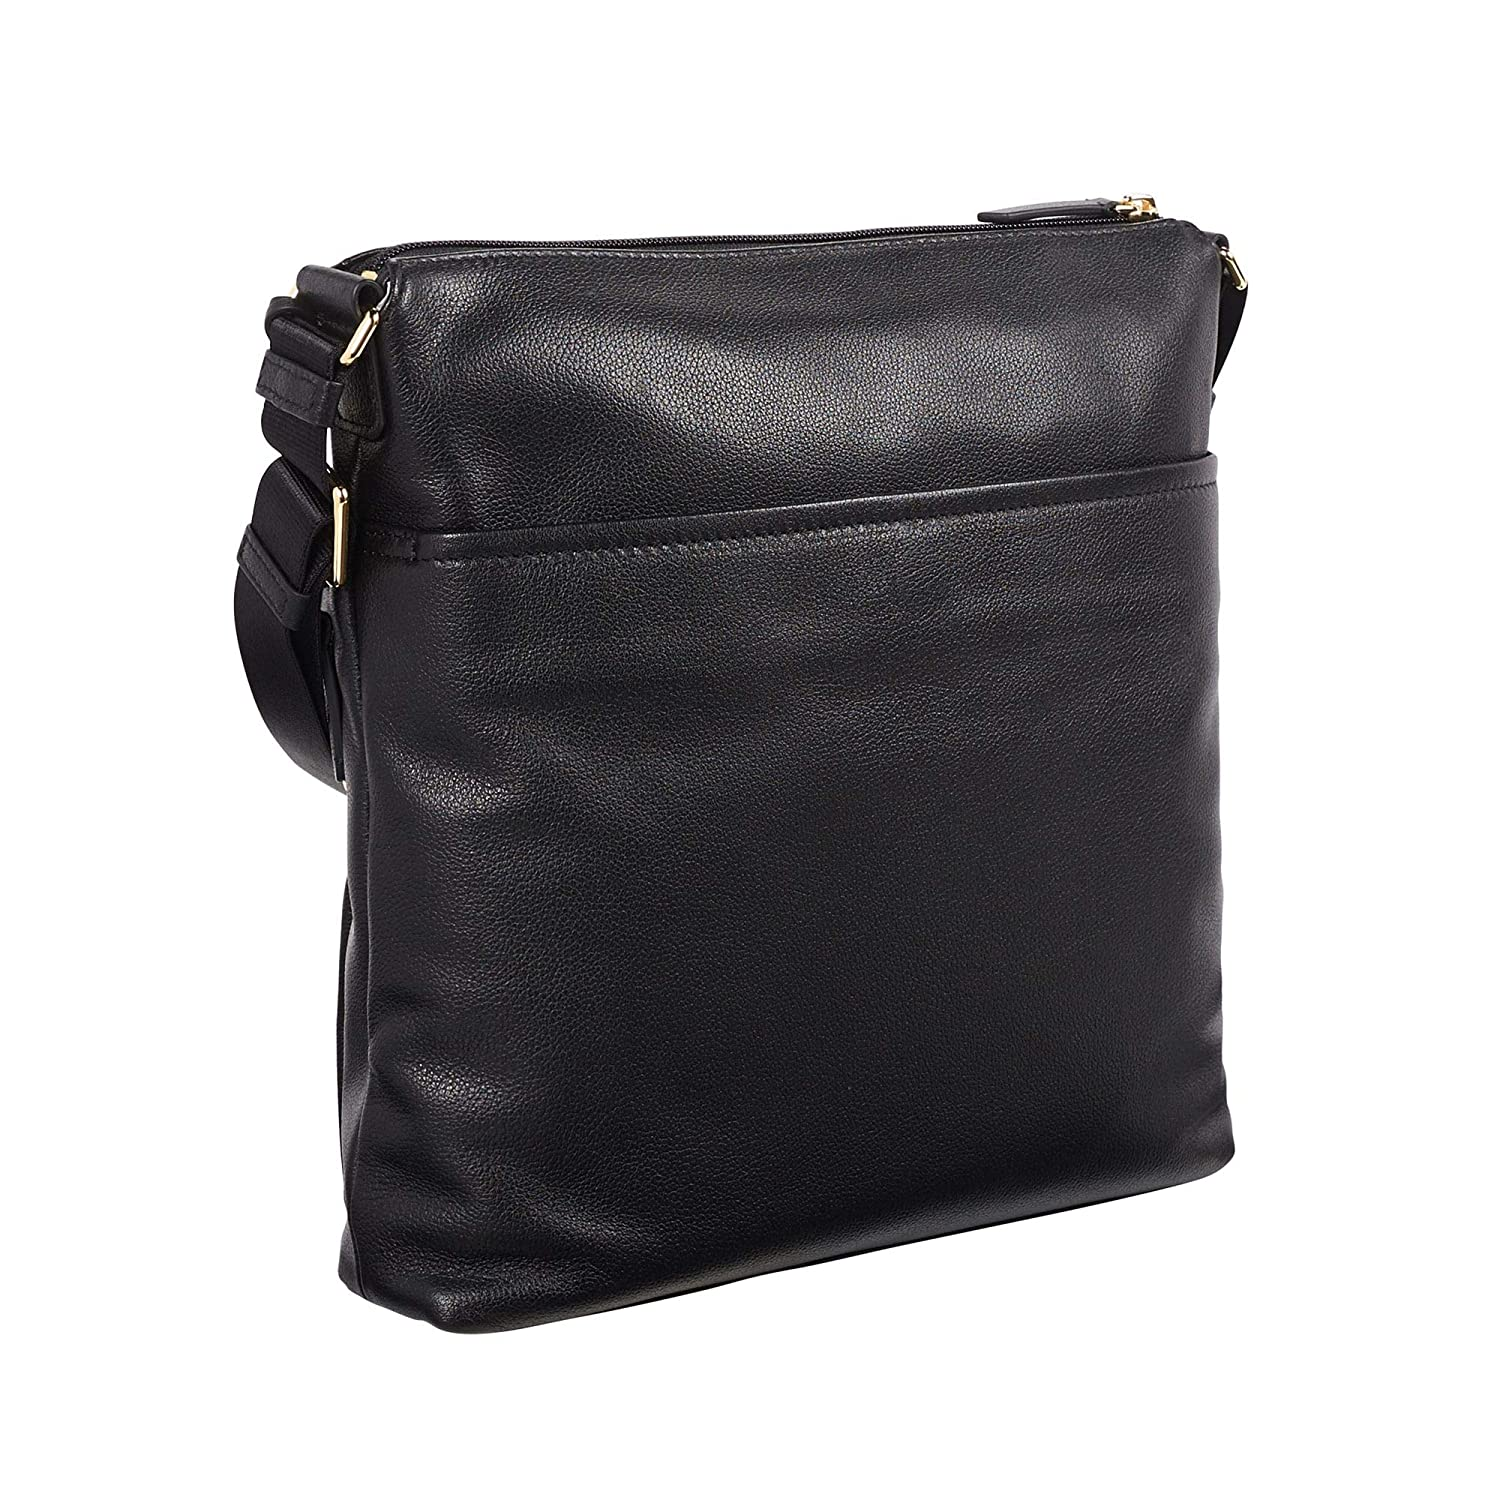 3d223a2e09926 Amazon.com: Tumi Women's Voyageur Canton Leather Crossbody Cross Body Bag,  Black, One Size: Clothing